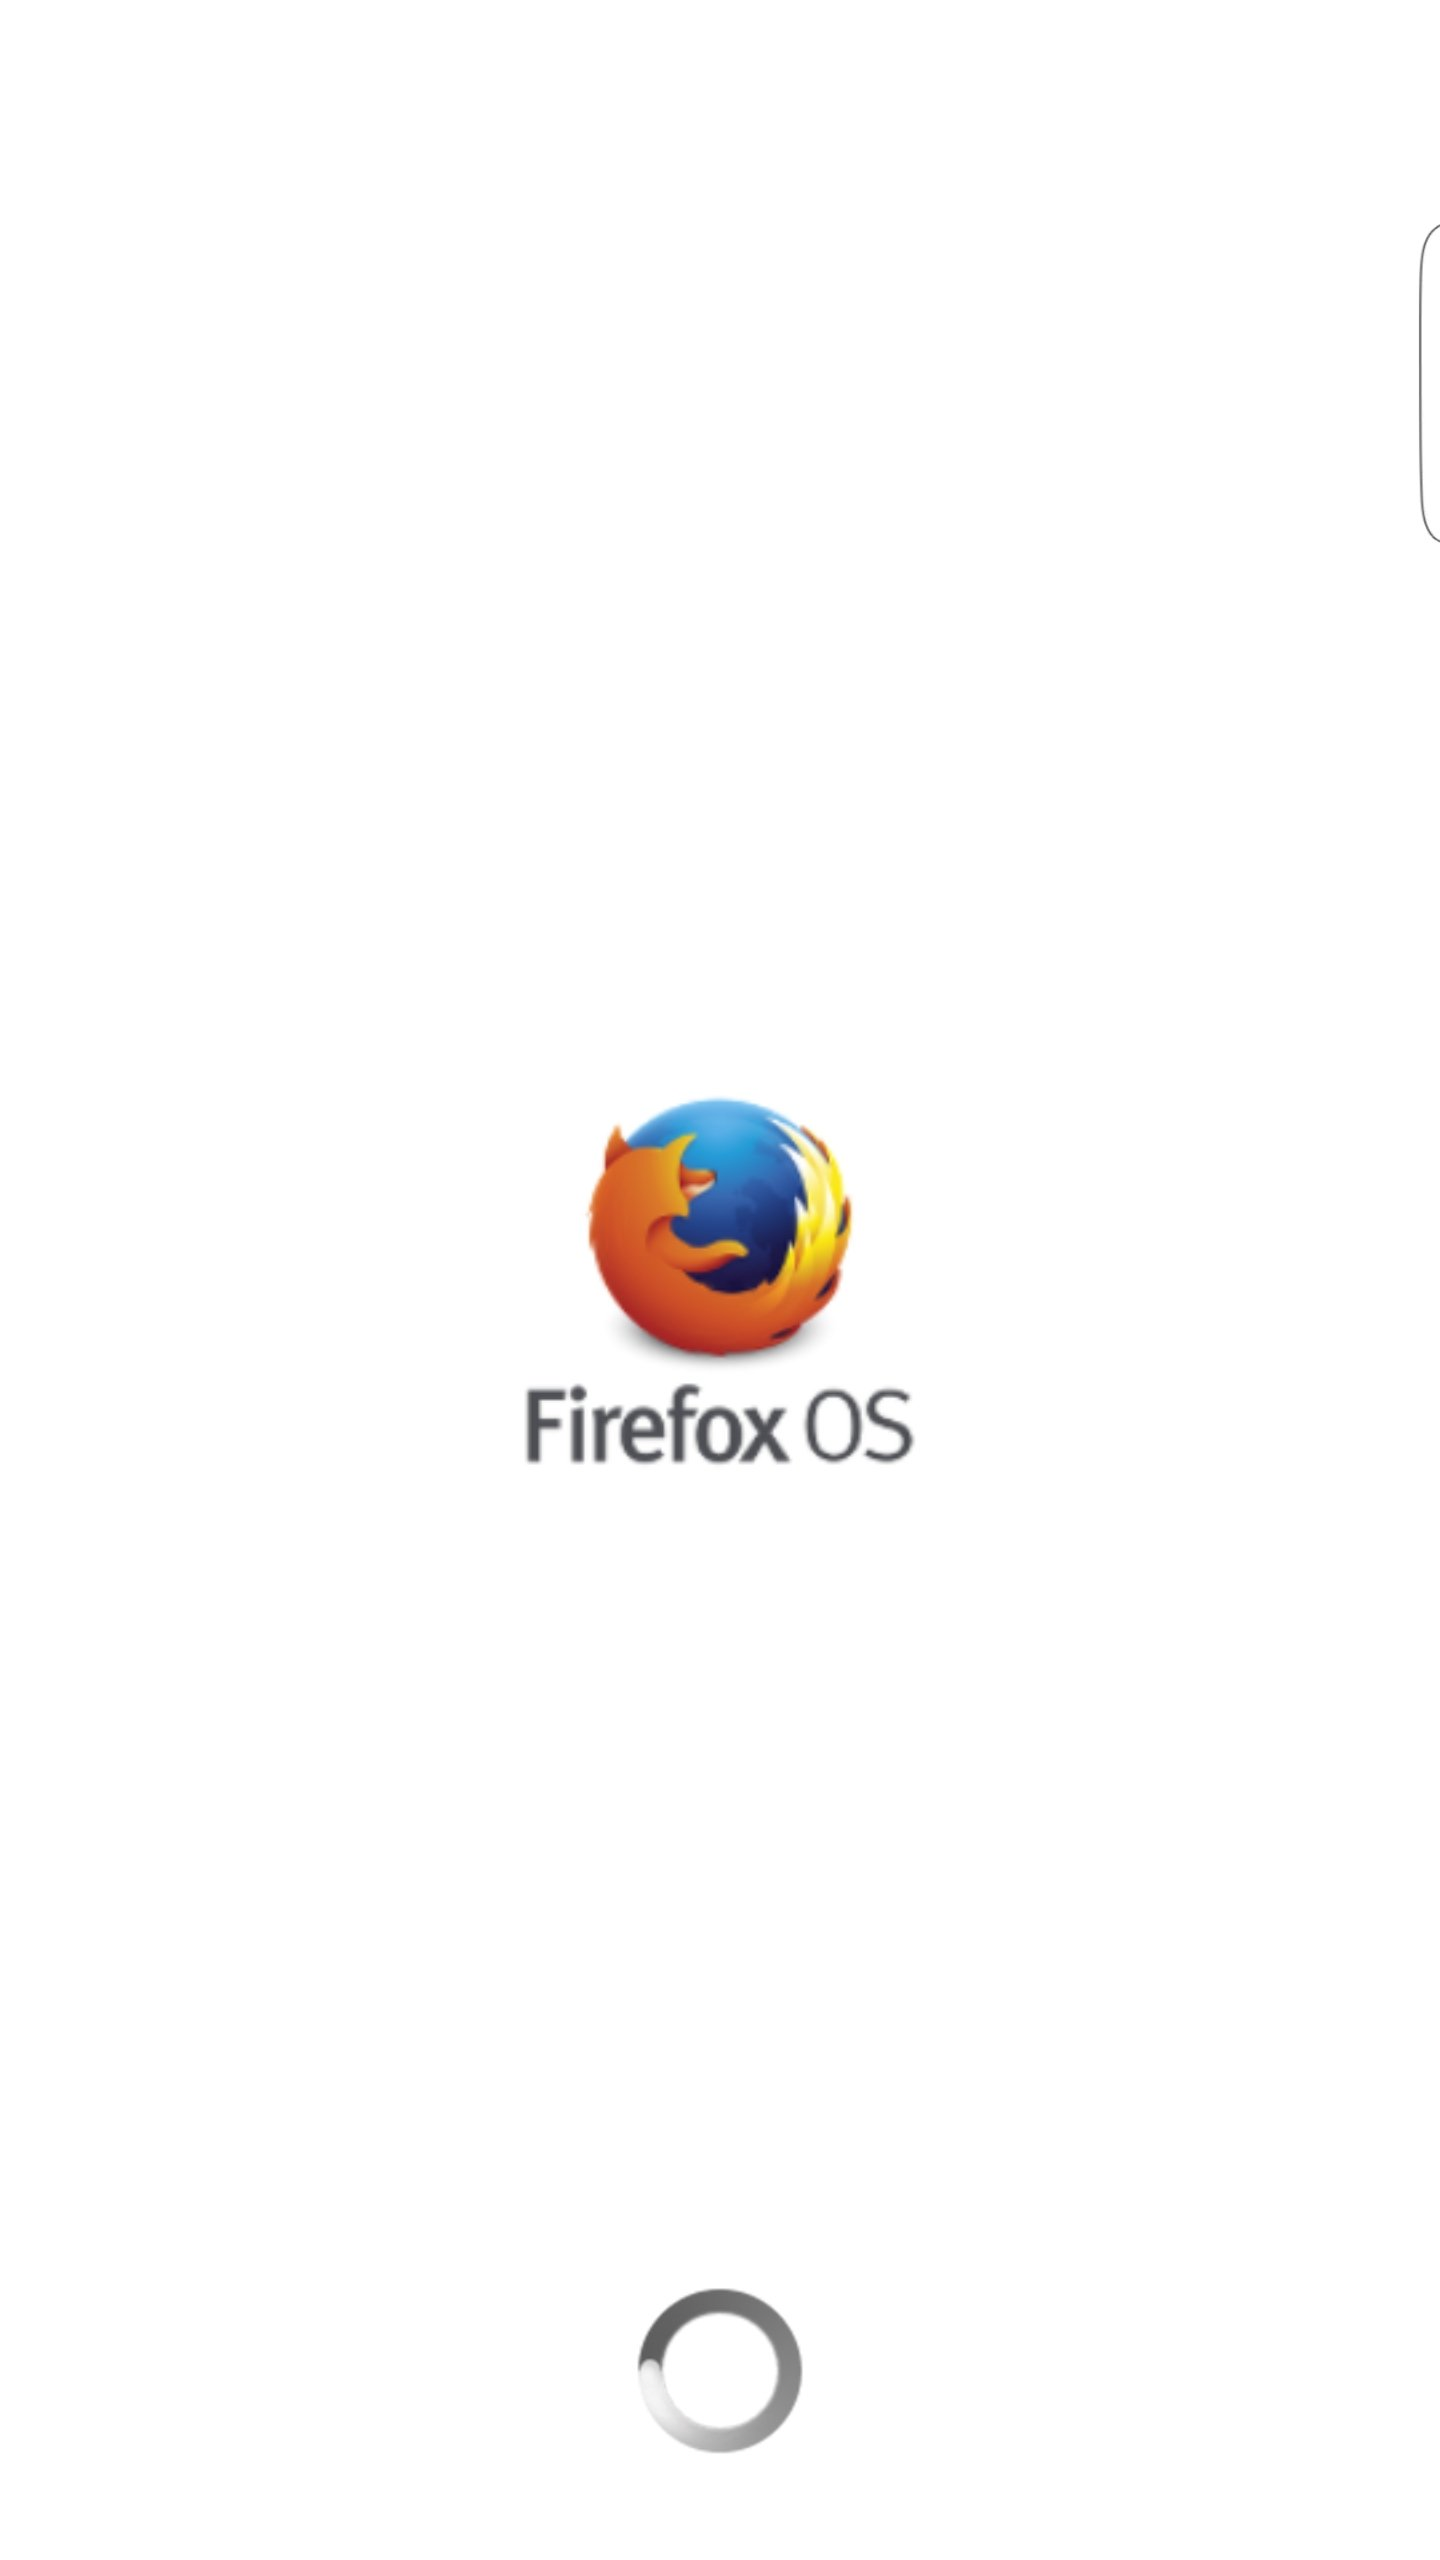 Firefox OS Developer Preview 2 5 - Download for Android APK Free